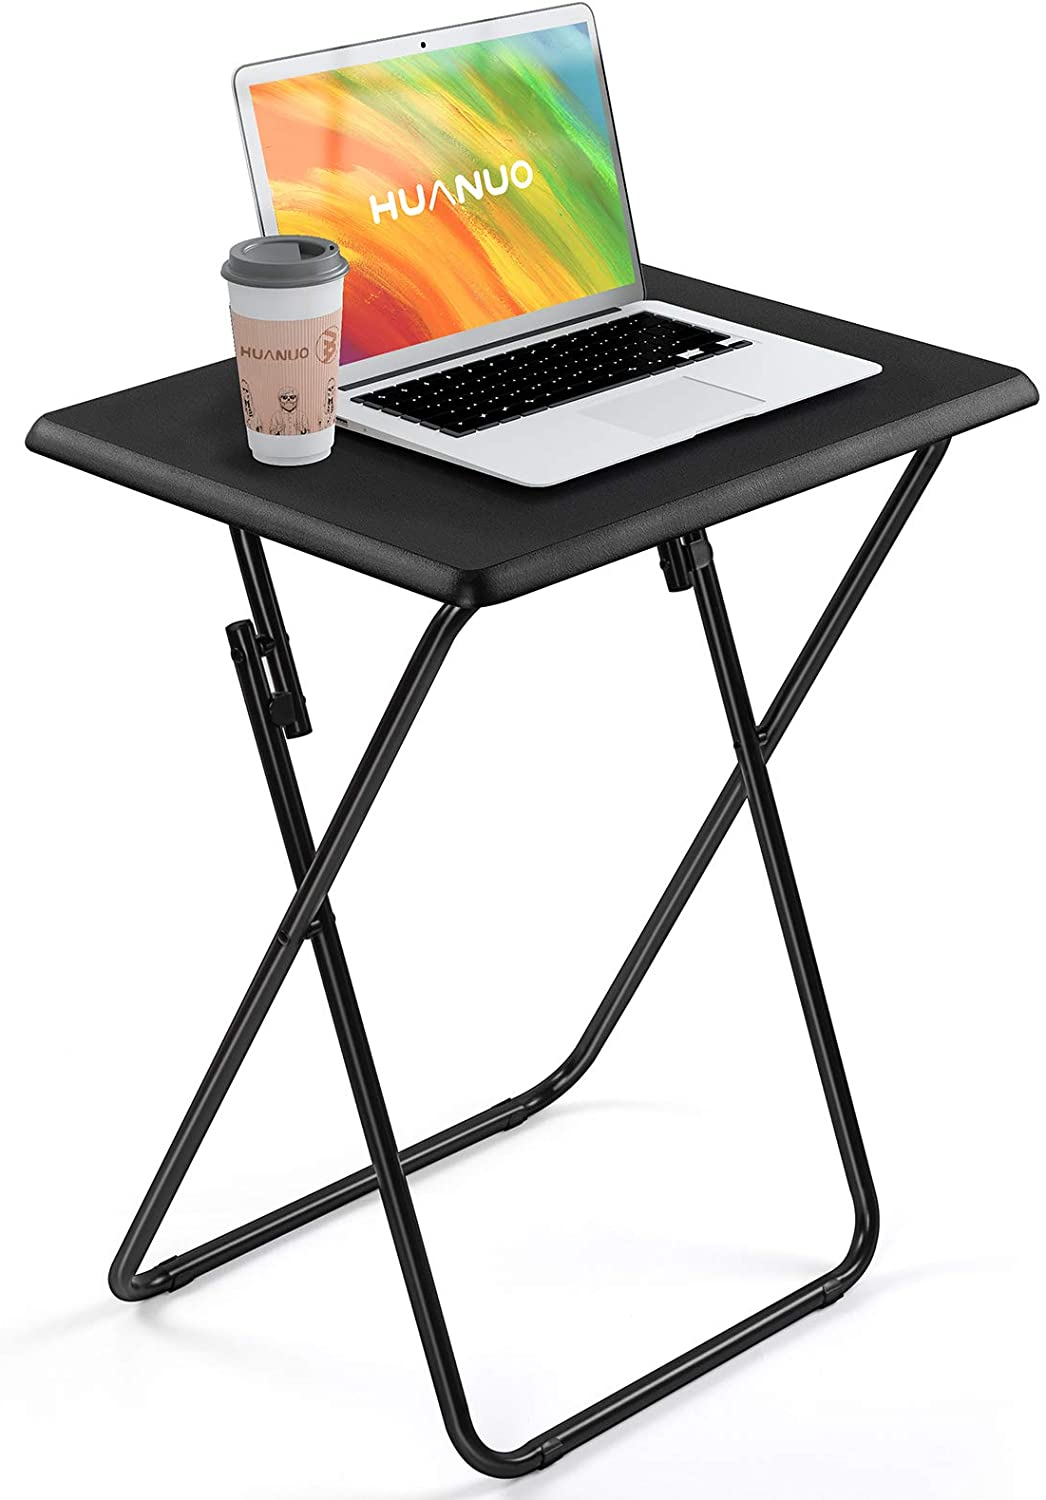 HUANUO Folding TV Tray Table -Stable Tray Table with No Assembly Required, TV Dinner Tray for Eating, Foldable Snack Tables for Bed & Sofa, Home & Office Use